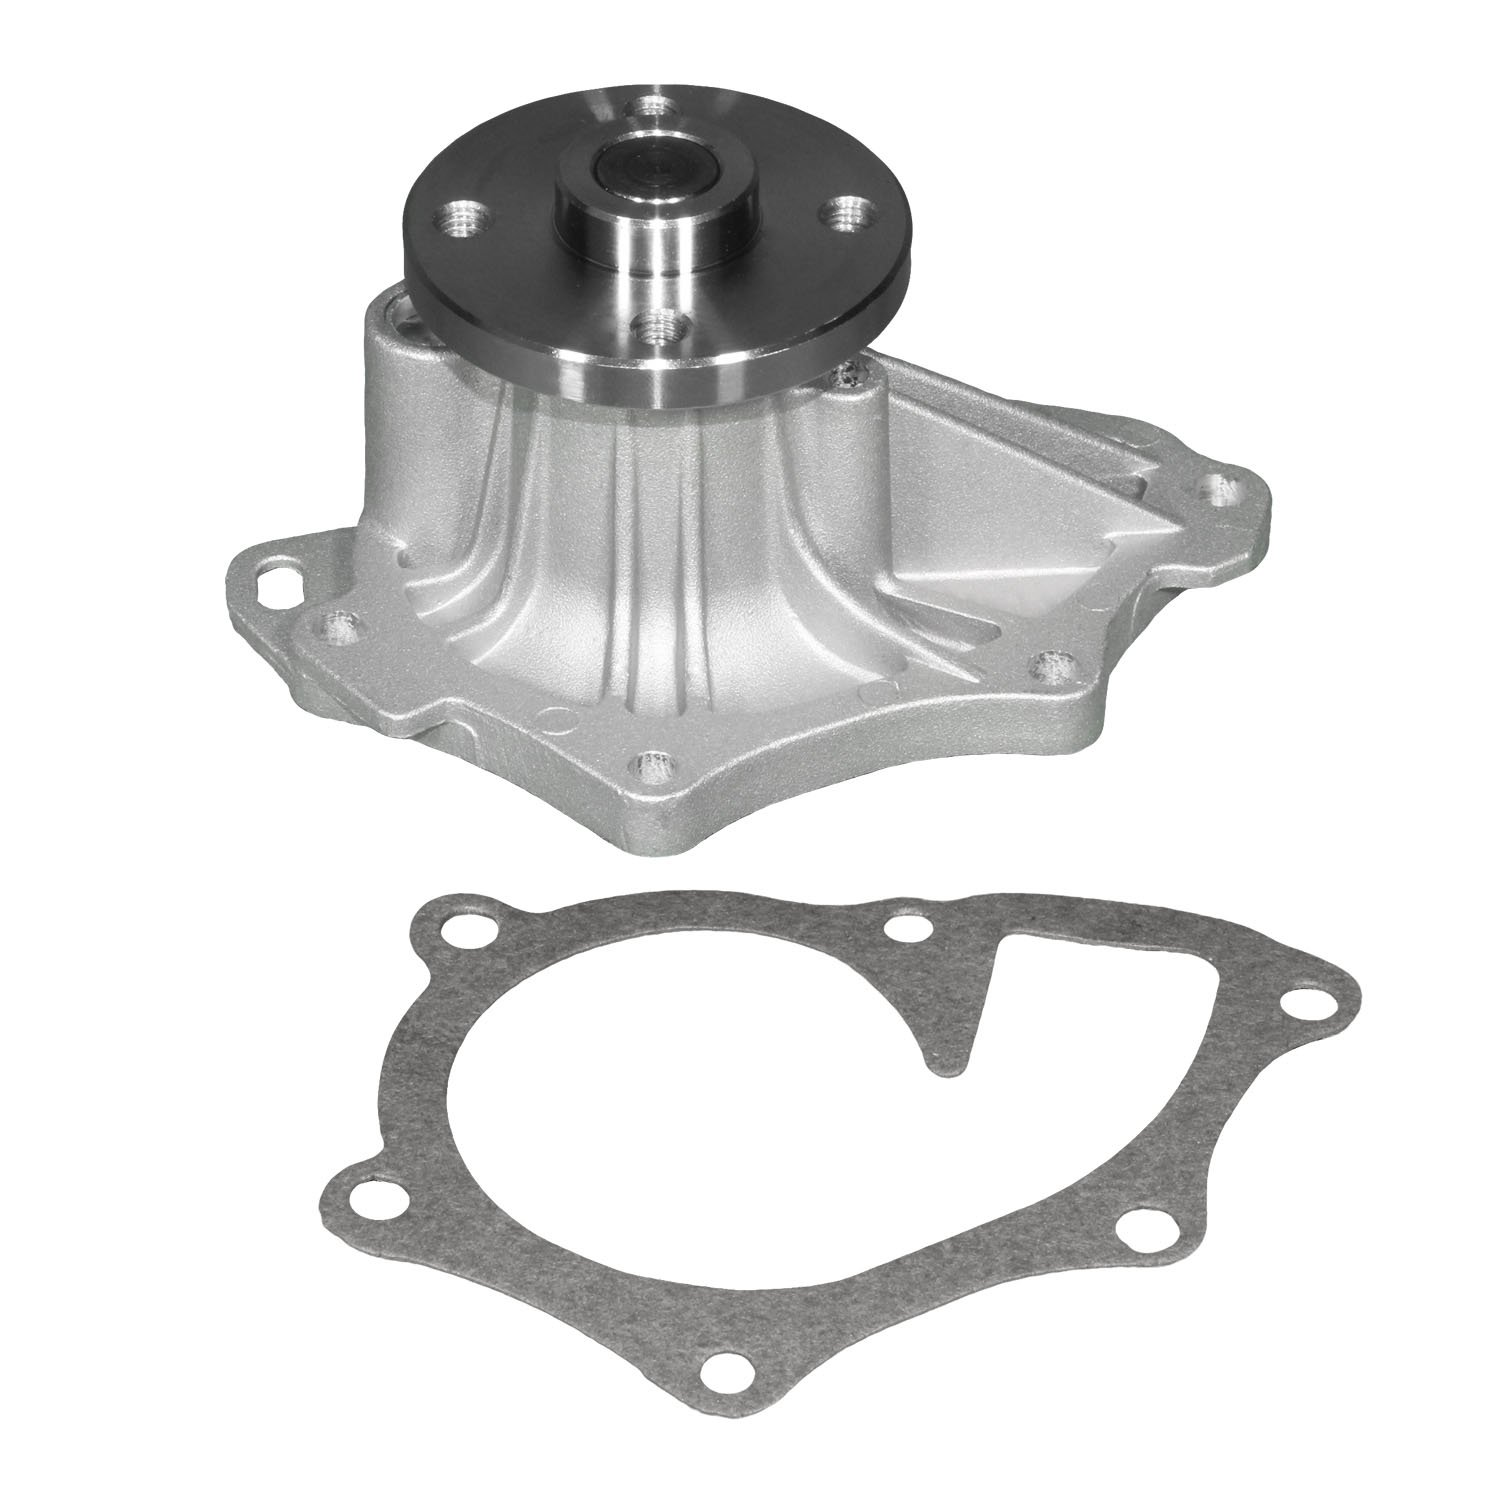 ACDelco 252-856 Professional Water Pump Kit by ACDelco